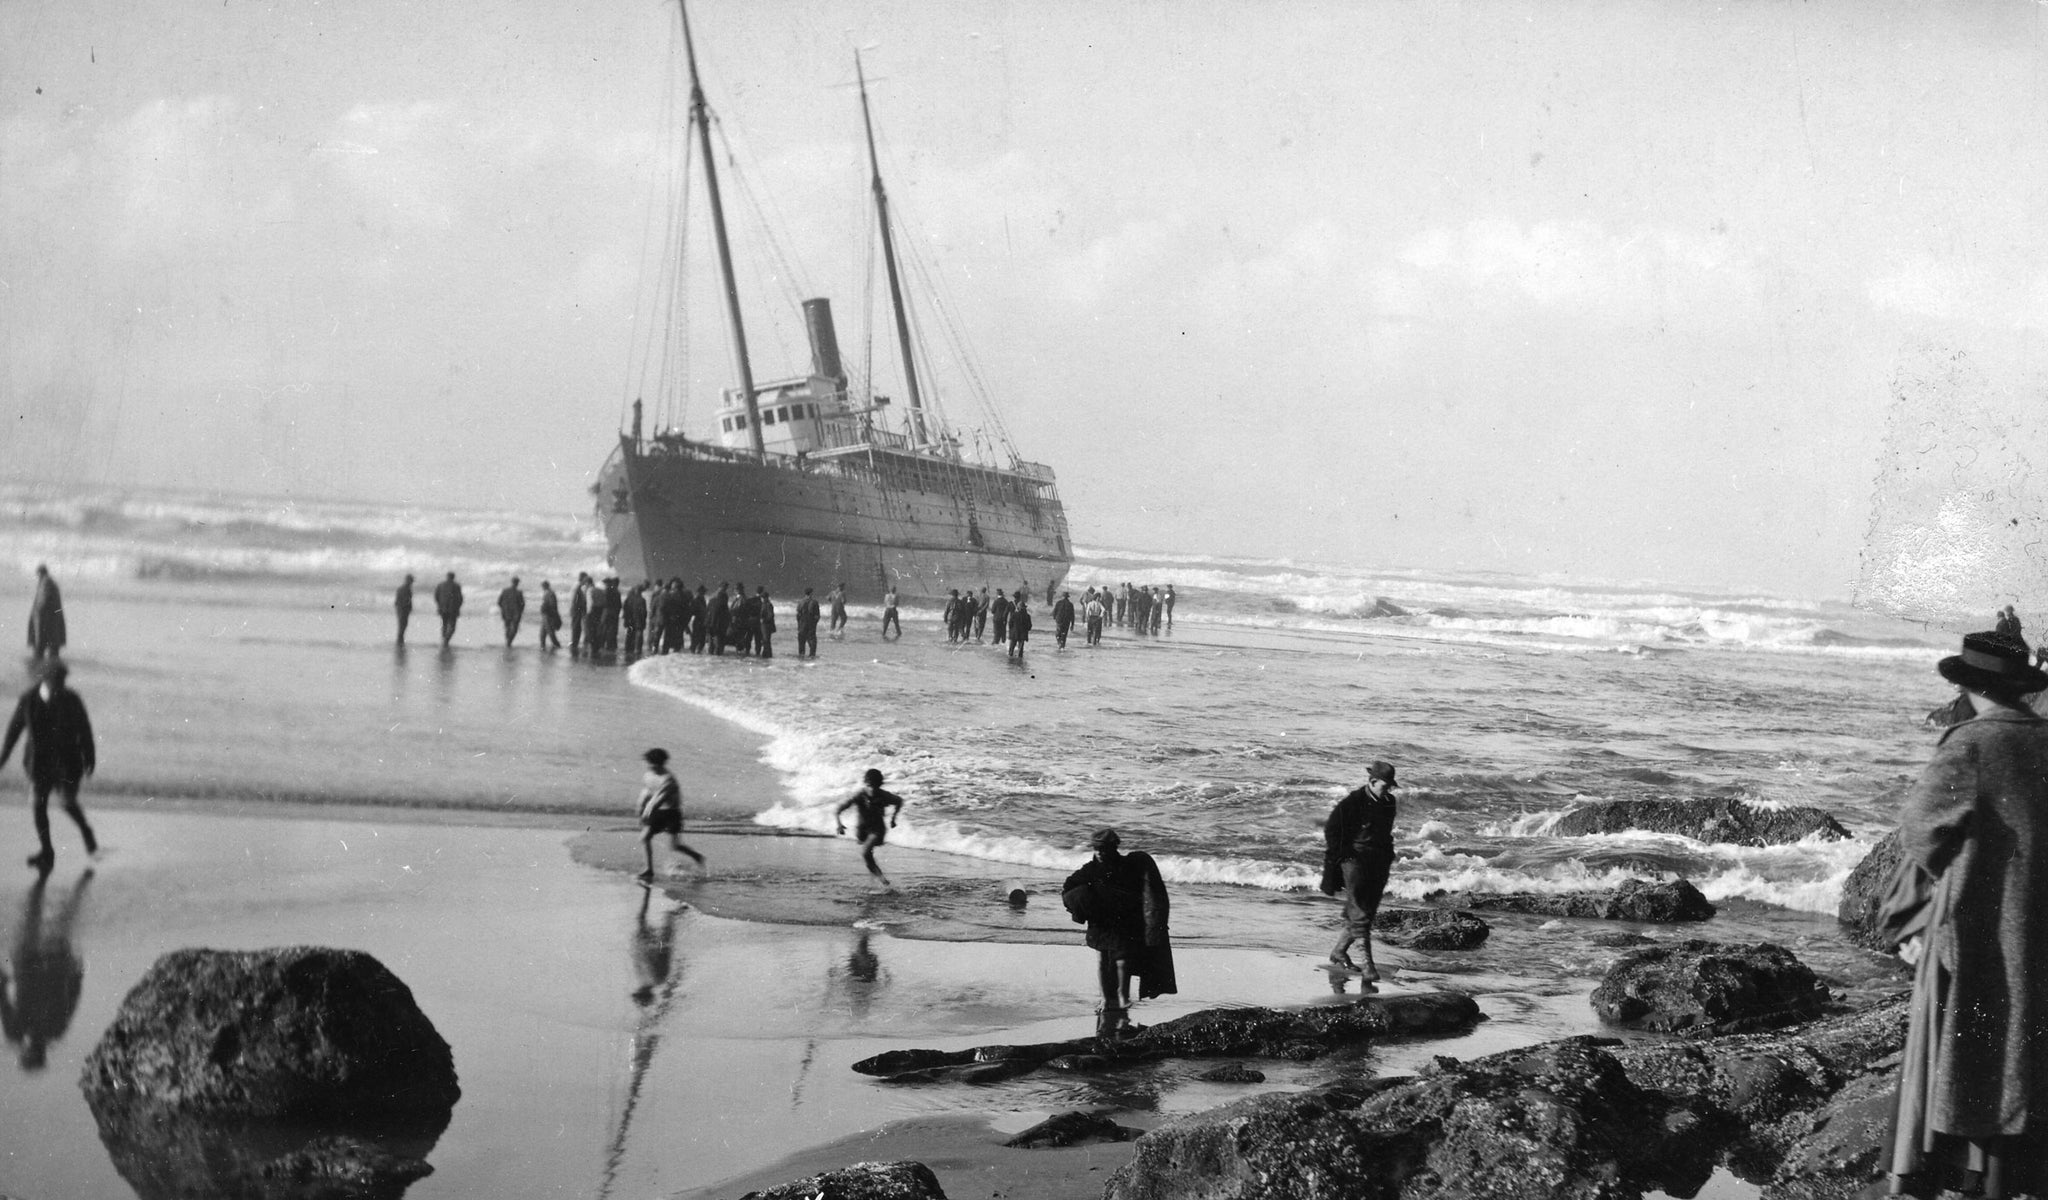 Onlookers viewing the wreck of the Santa Clara near Marshfield (Coos Bay), November 5, 1915. -- Courtesy of Coos History Museum & Maritime Collection (982-190.61)